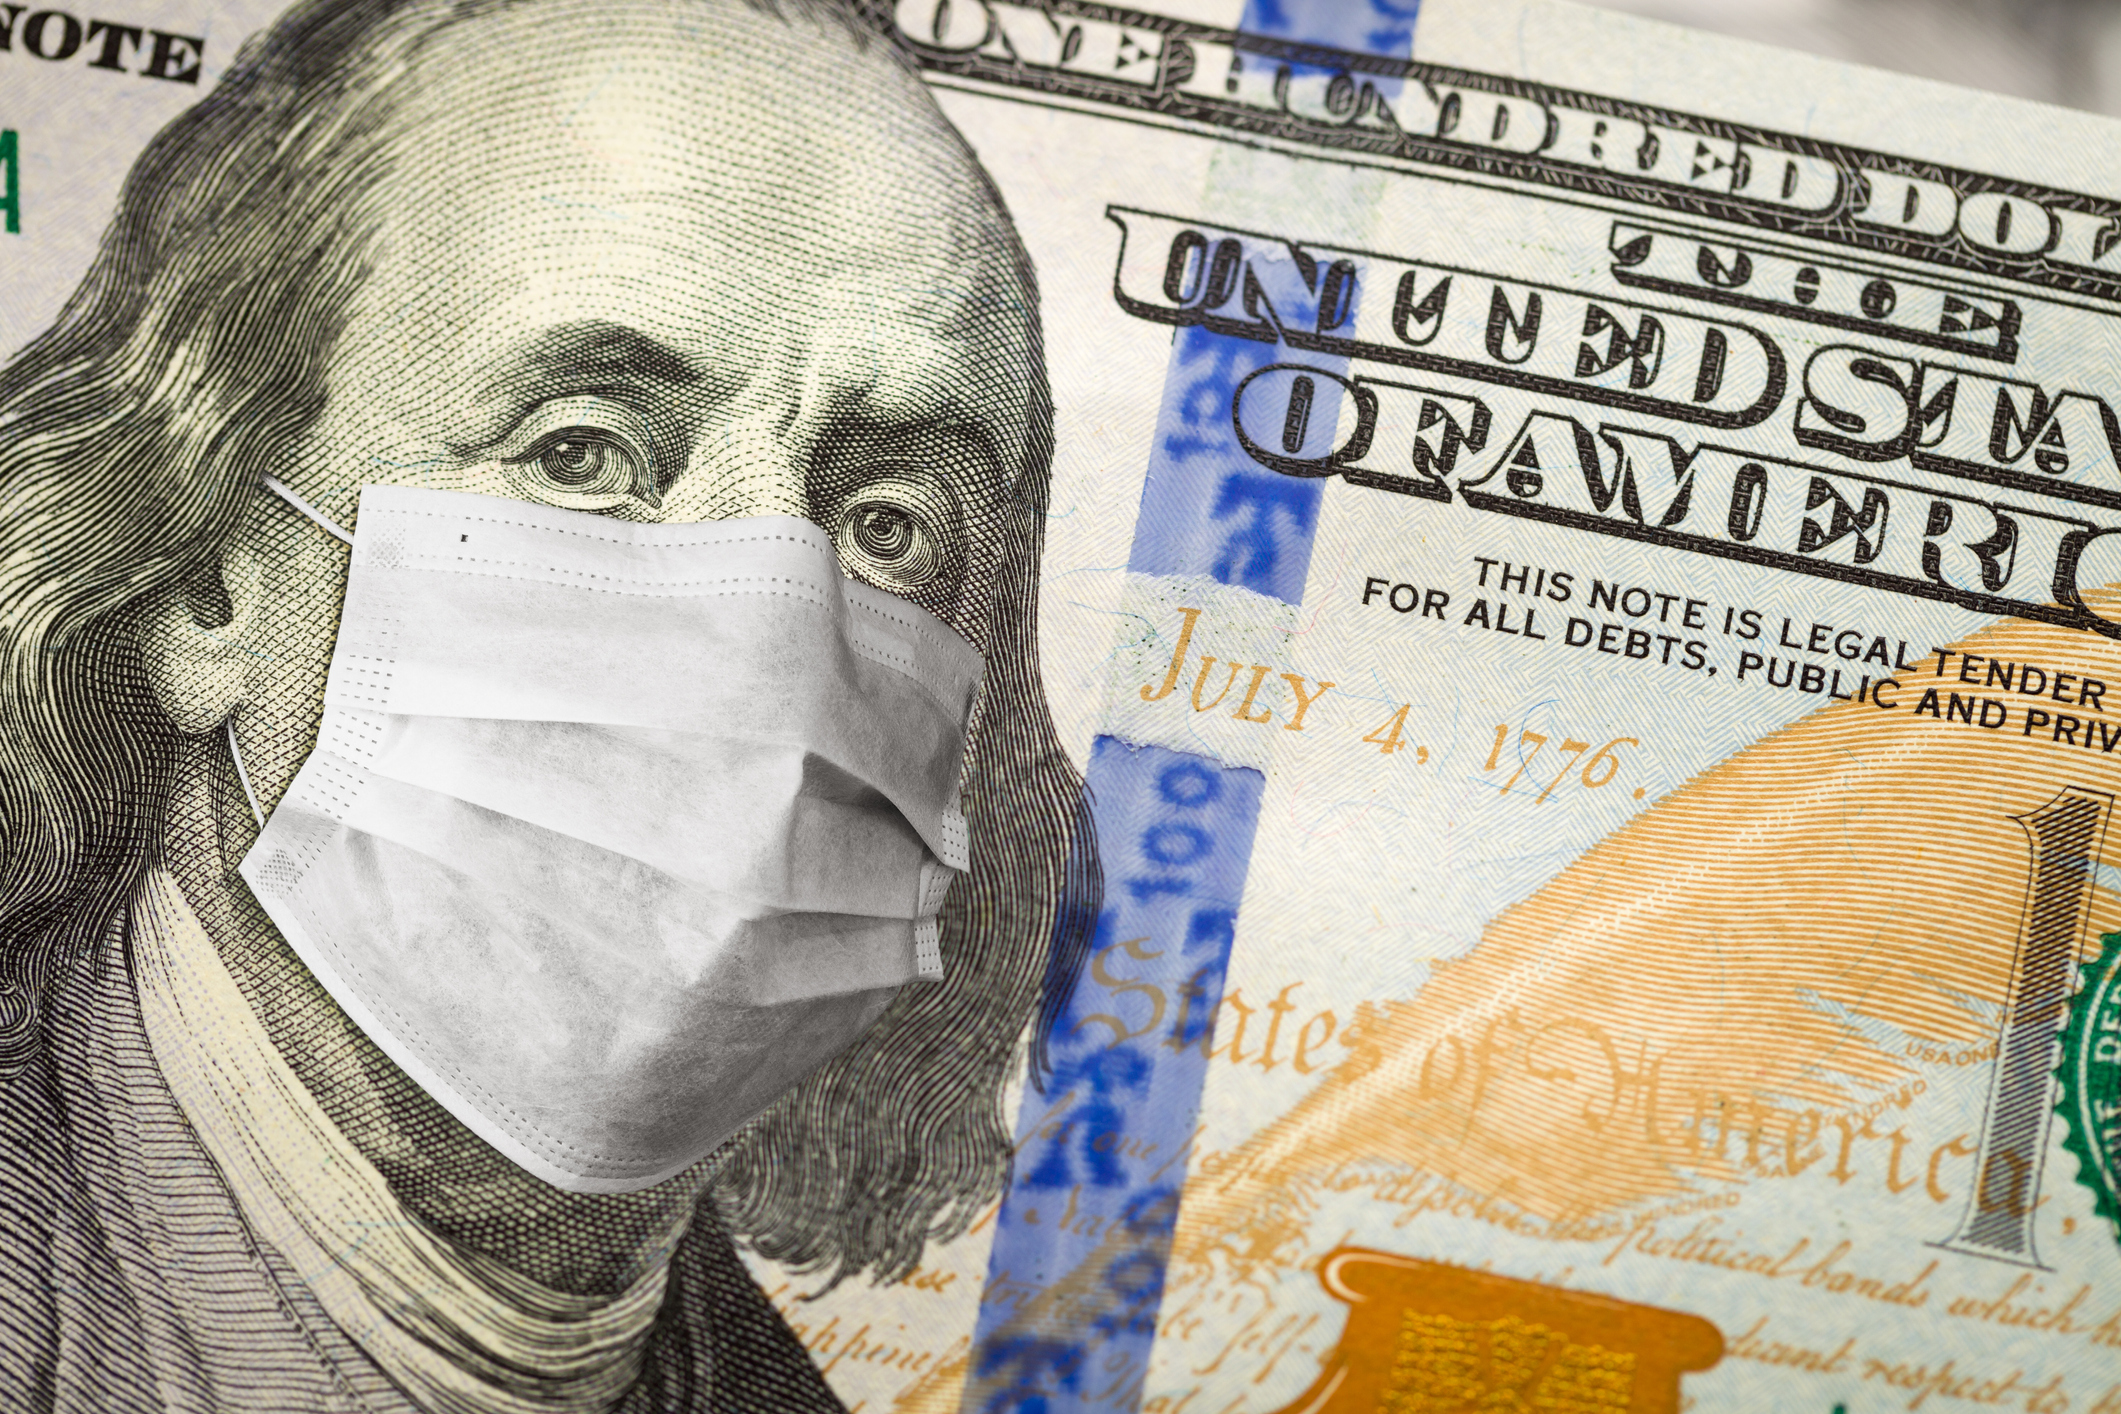 Economy during the pandemic. Image credit: iStock